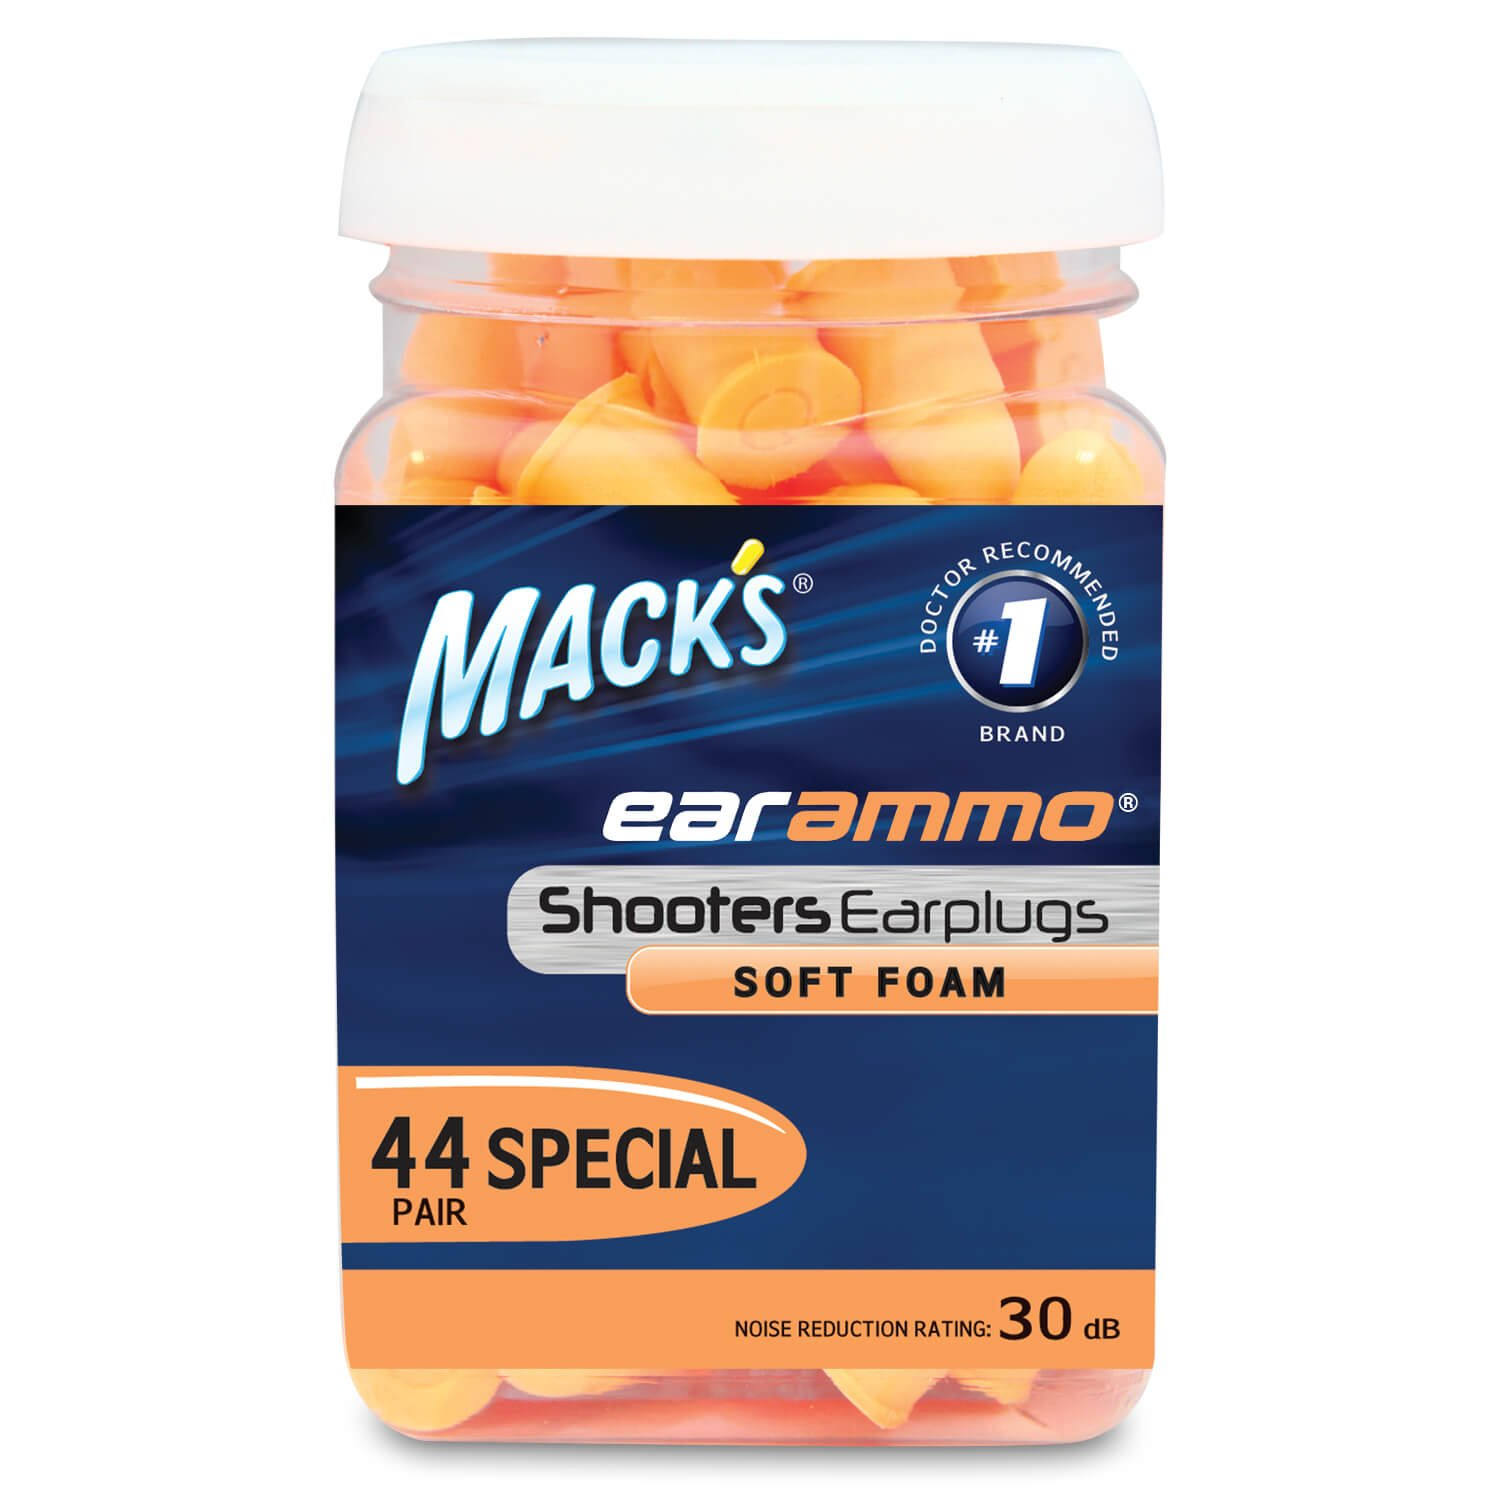 Mack's Ear Ammo Shooting Ear Plugs – Soft Foam, 44 Pair – Shooting Ear Protection for Hunting, Tactical, Target, Skeet and Trap Shooting